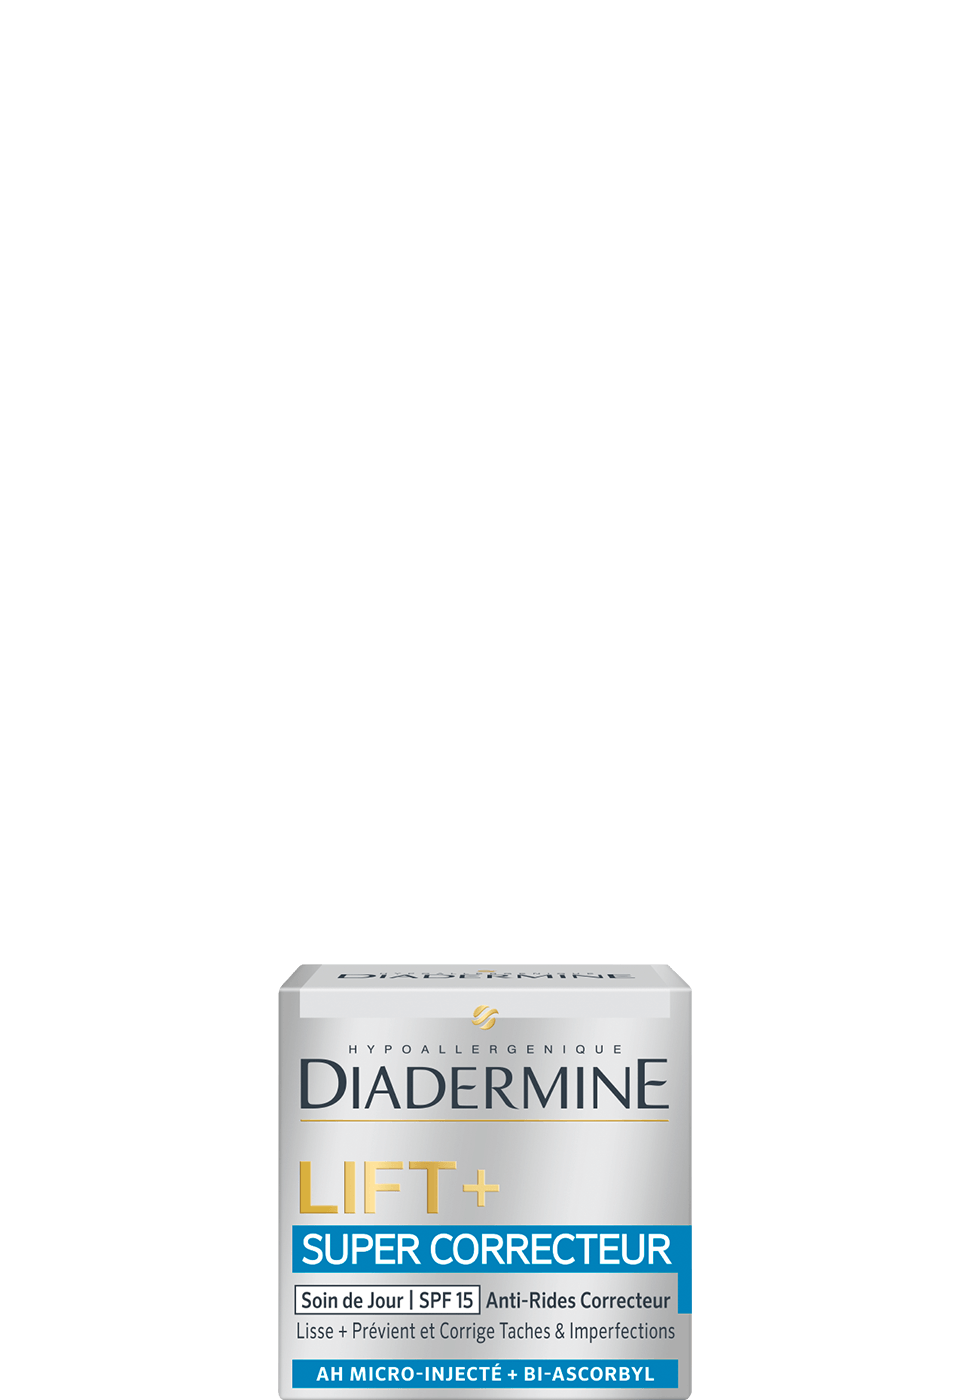 diadermine_com_lift_plus_super_corrector_correcting_anti-age_day_cream_spf15_970x1400